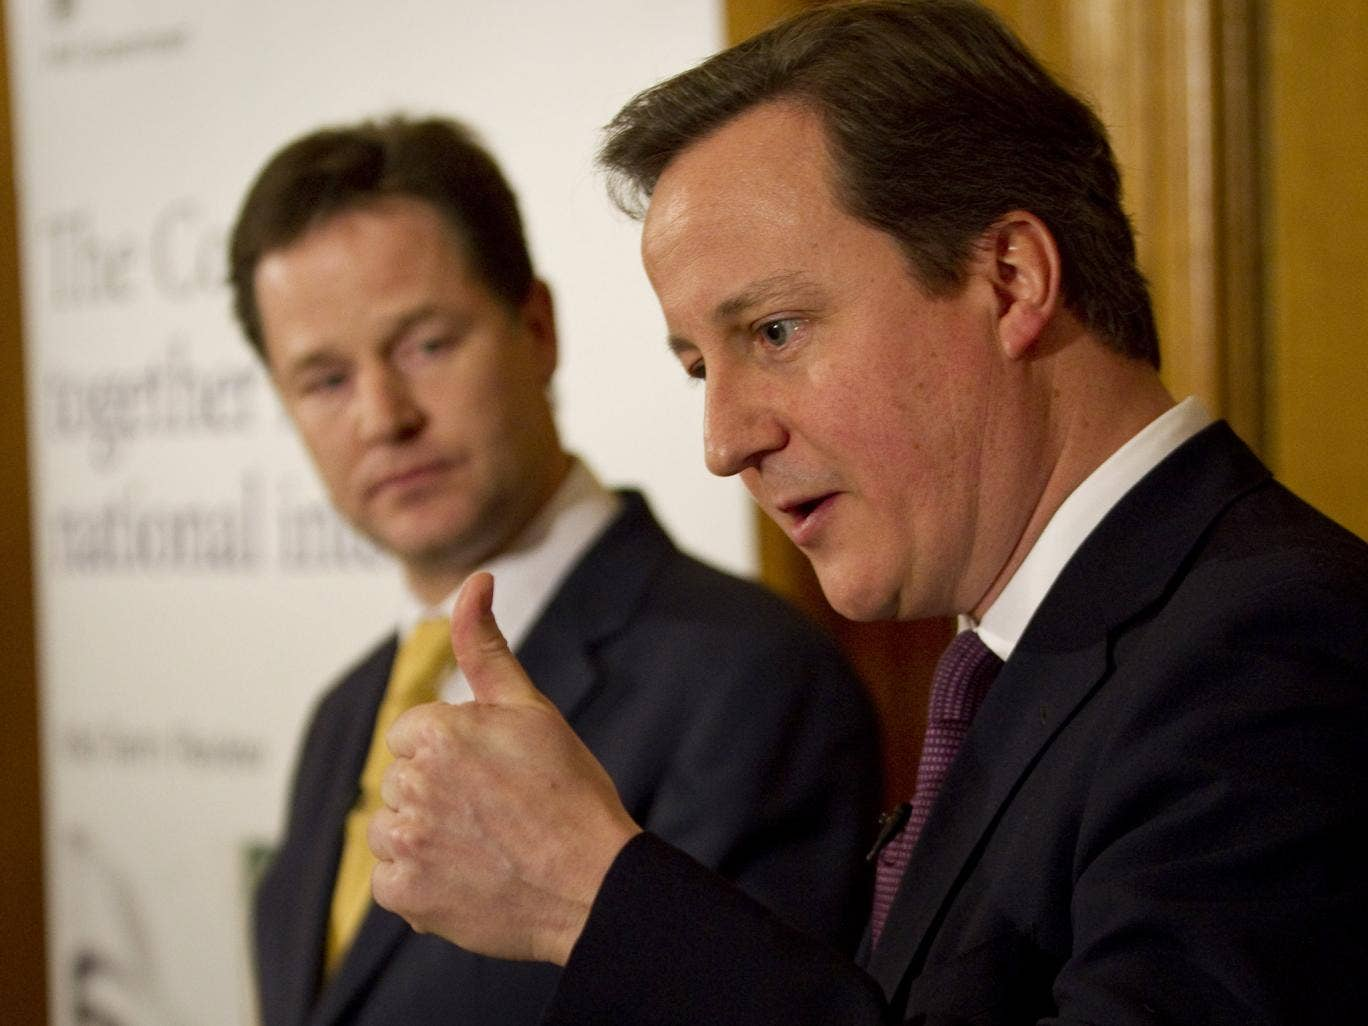 The joint Cameron-Clegg statement will worry some MPs in both coalition parties